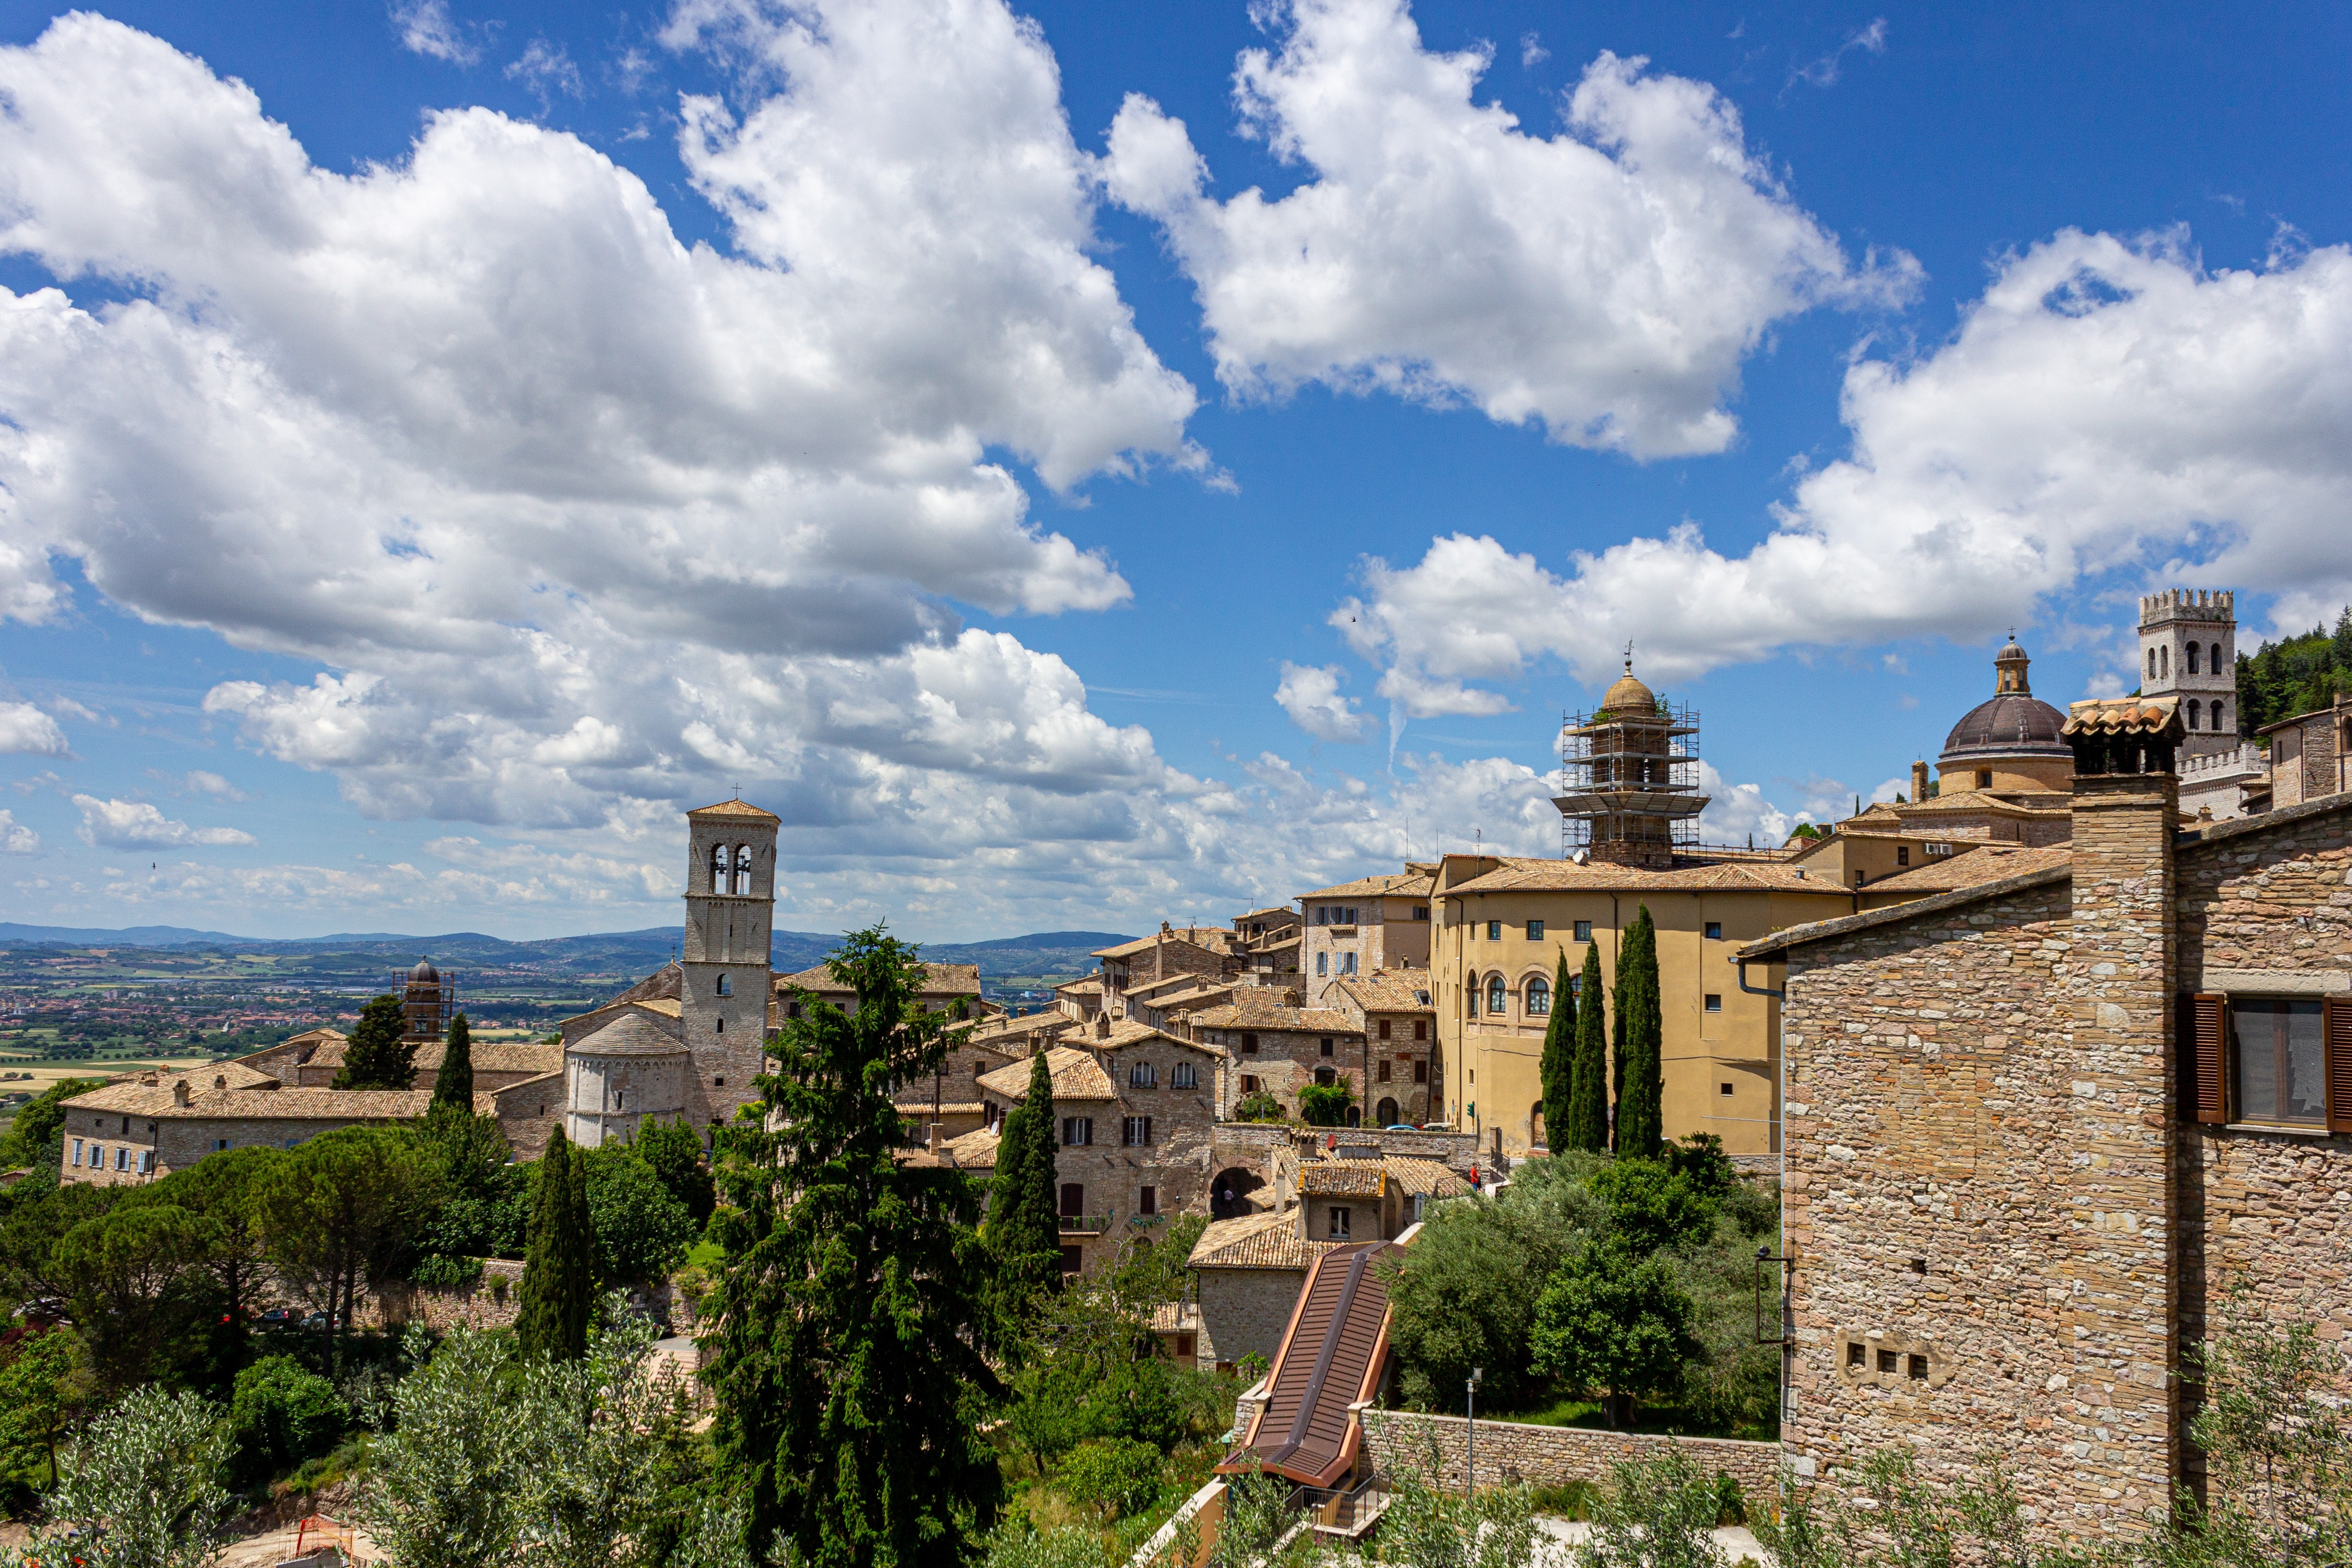 View of Assisi in Umbria, Italy